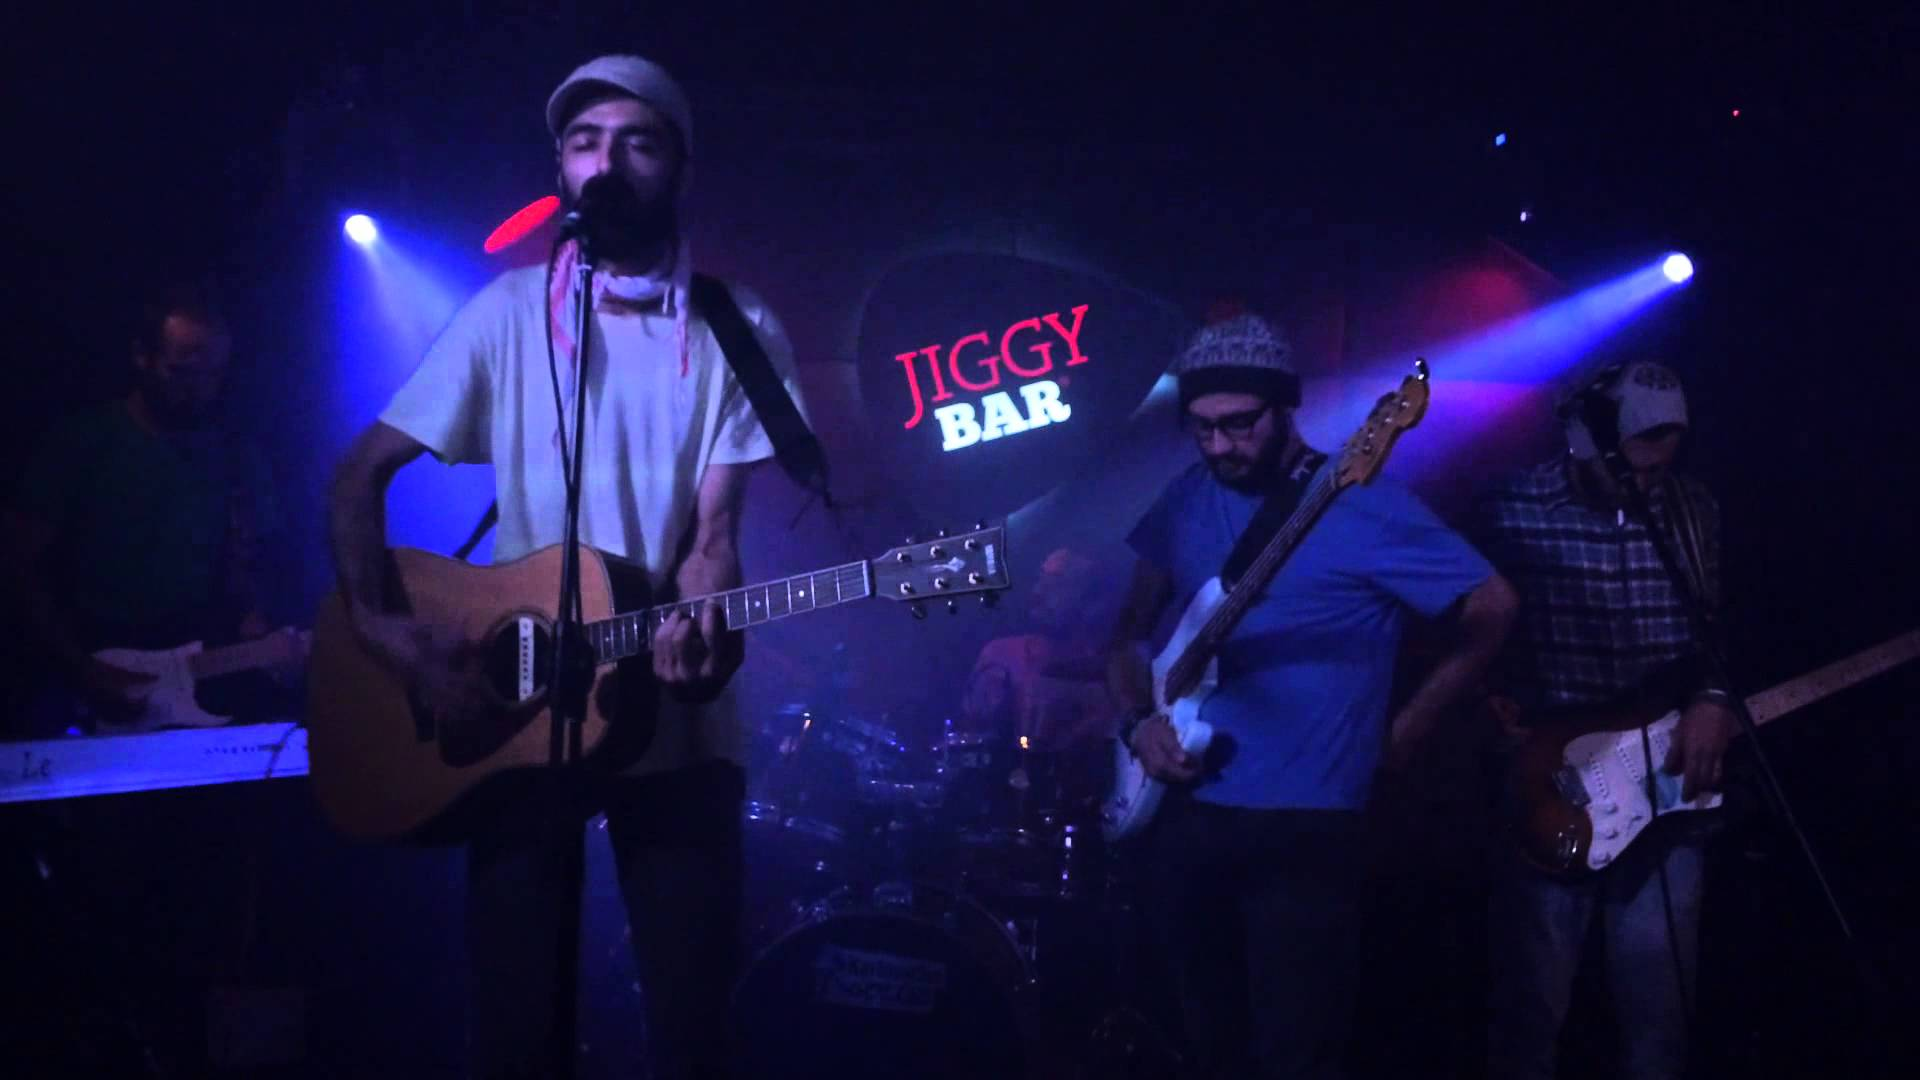 The band play Zagreb